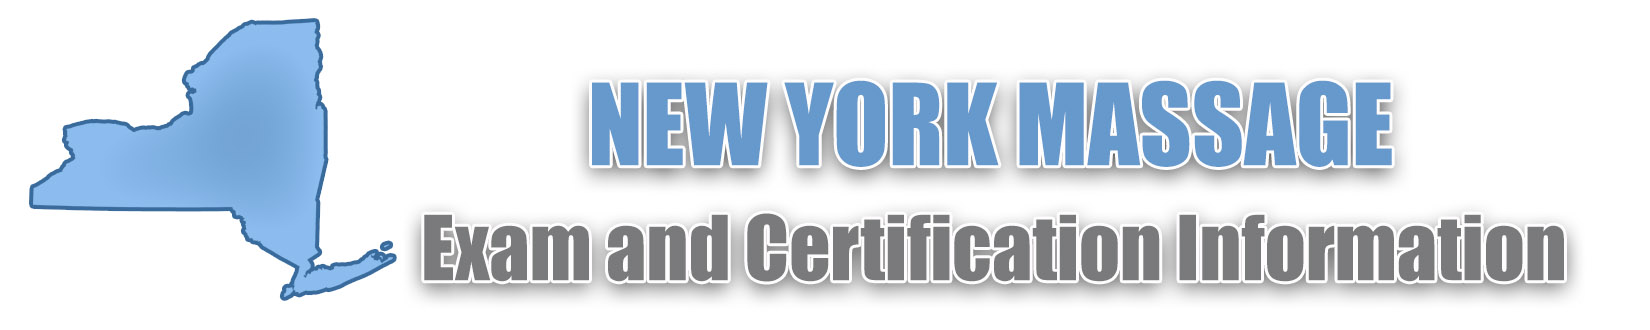 New York MBLEX Massage Exam and Certification Information